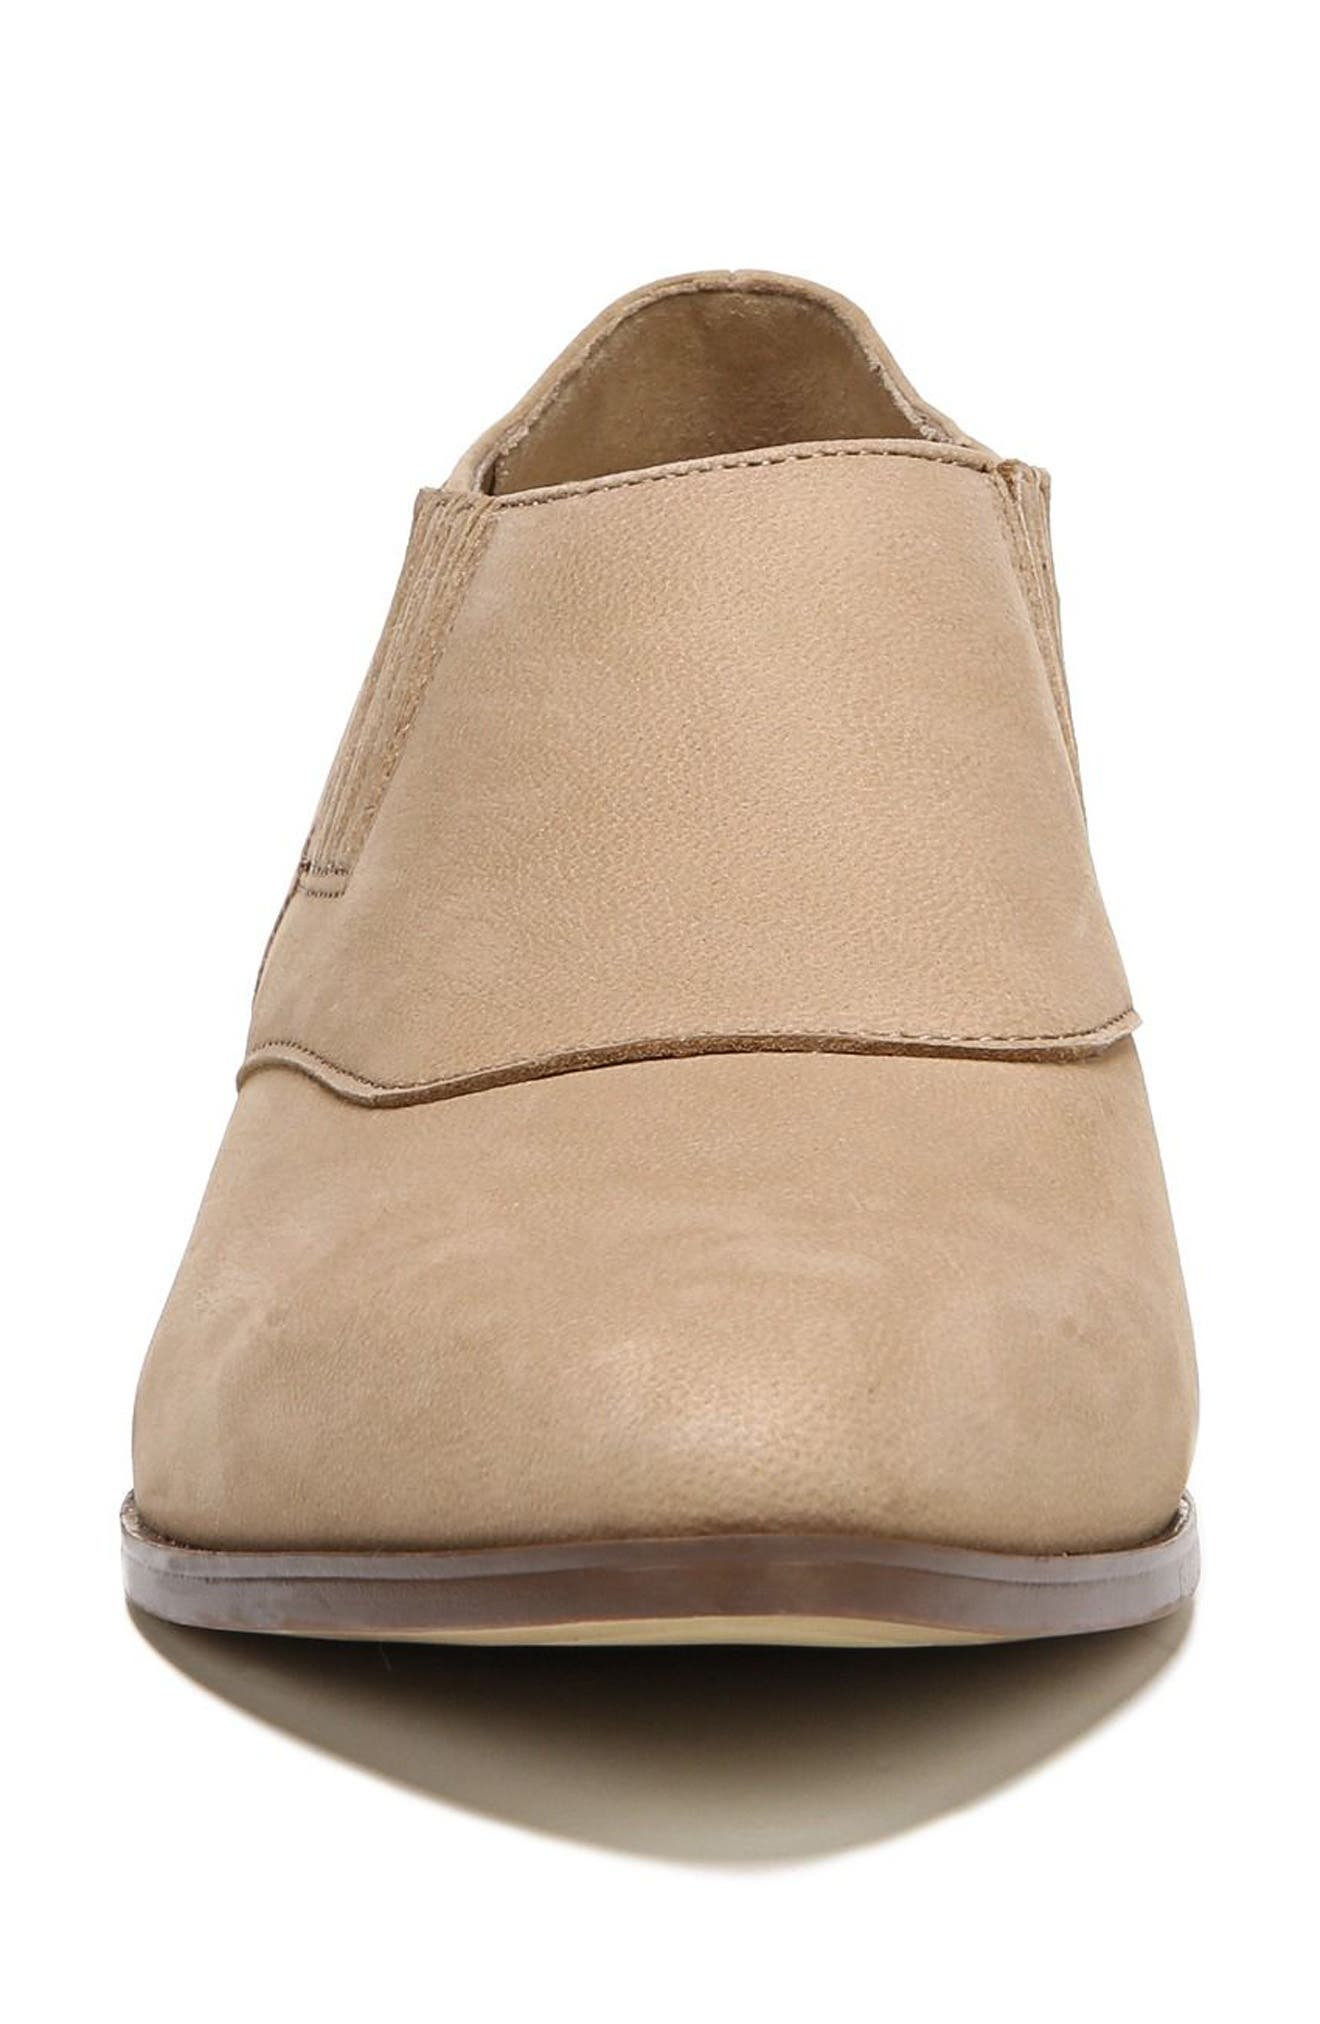 Blythe Bootie,                             Alternate thumbnail 5, color,                             Toasted Barley Nubuck